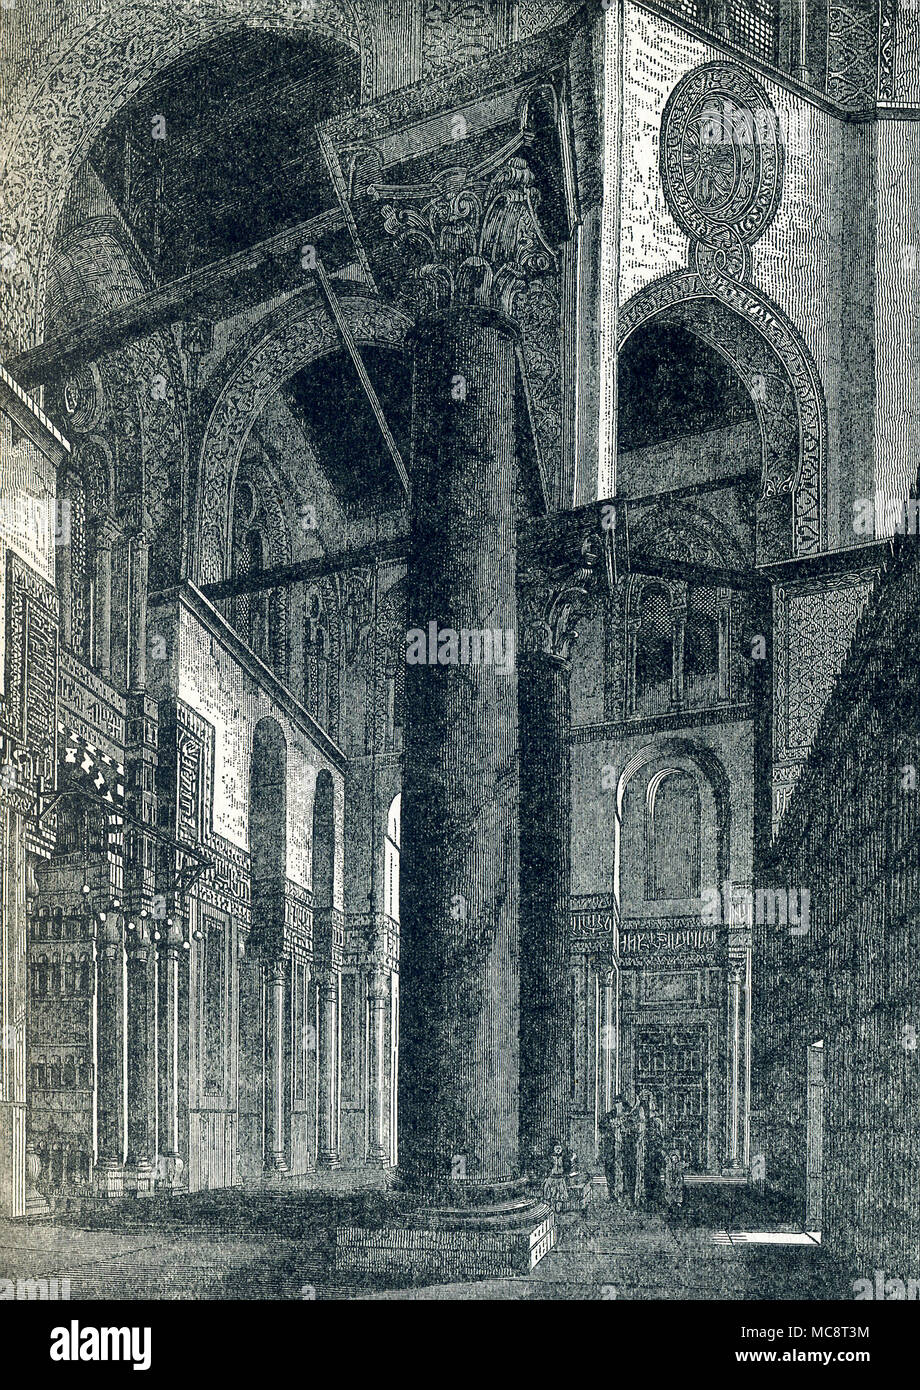 This illustration dates to around 1900. It shows a window in the complex of the Sultan al-Mansur Qalawun (also spelled Kilawun). It is located on al-Muizz li-Din Allah Street, in an area that used to be part of the Western Fatimid Palace in Cairo, Egypt. It dates to A.D. 1285 and the Mamluk period in Egypt. The master architect was Amir Alam al-Din al-Shuja'i. The complex includes a mausoleum, a madrasa, and a hospital. It is made of stone and comprises vertical arched recesses borne by marble pillars (seen here) within which are windows decorated with interlaced geometric shapes. - Stock Image